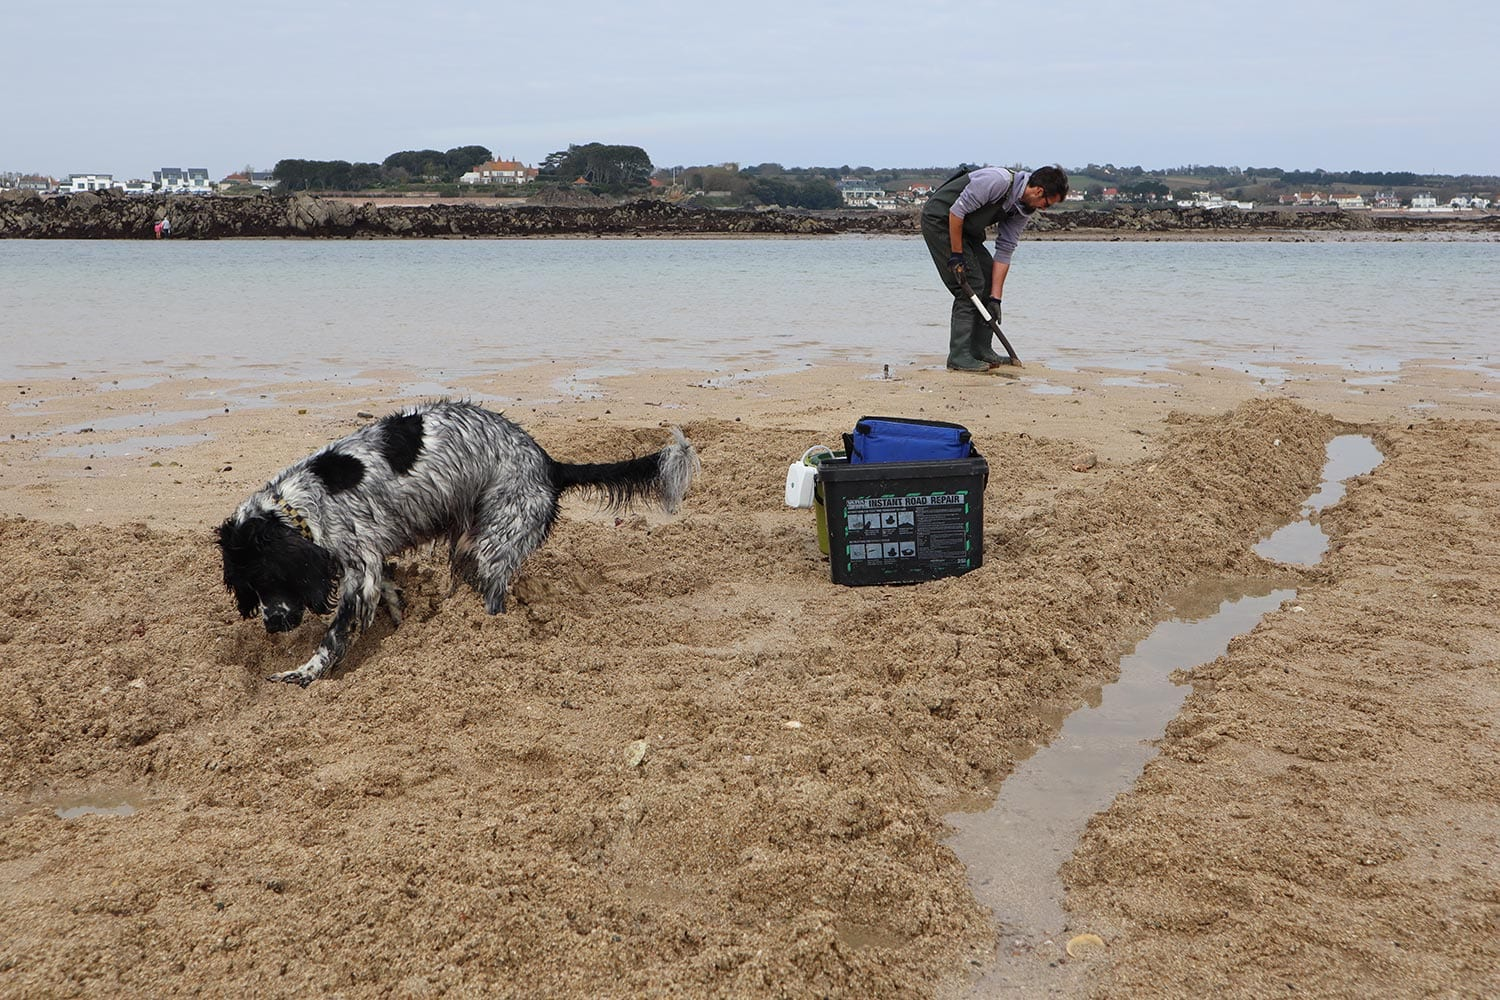 trench digging for sandeel in Jersey